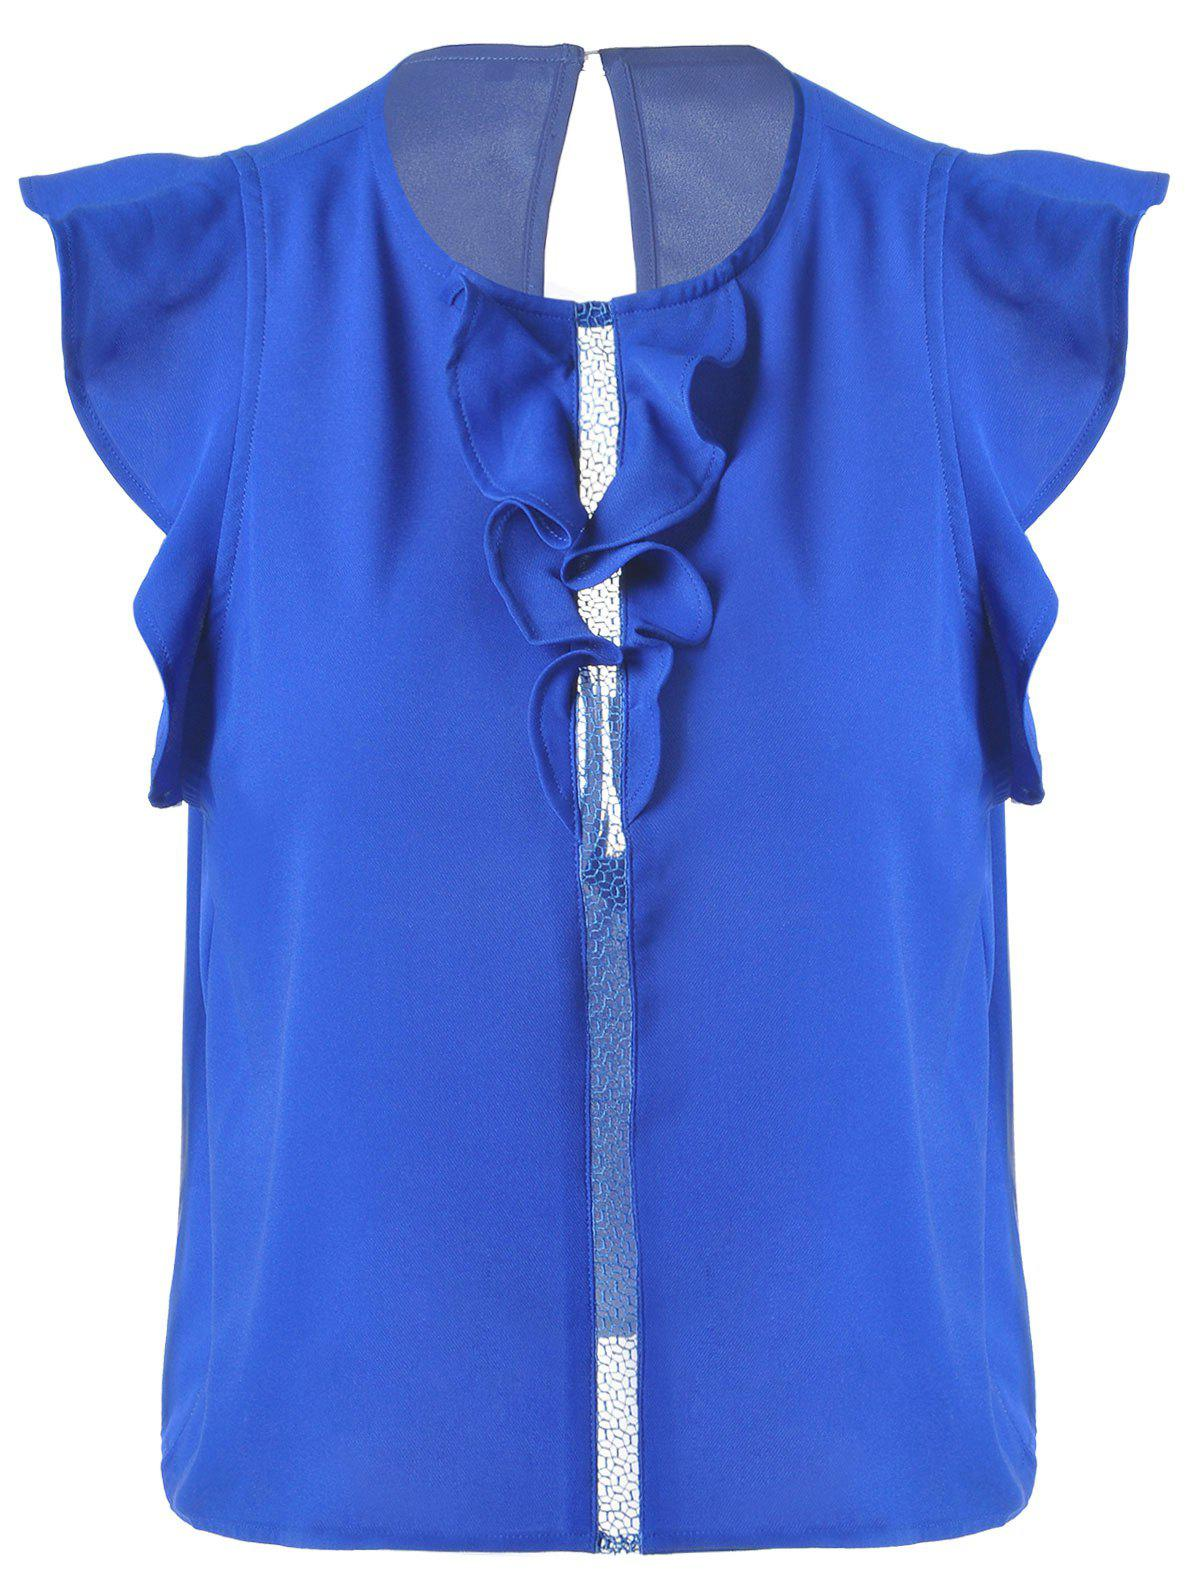 Sweet Women's Slimming Scoop Neck Flounce Blouse - SAPPHIRE BLUE L